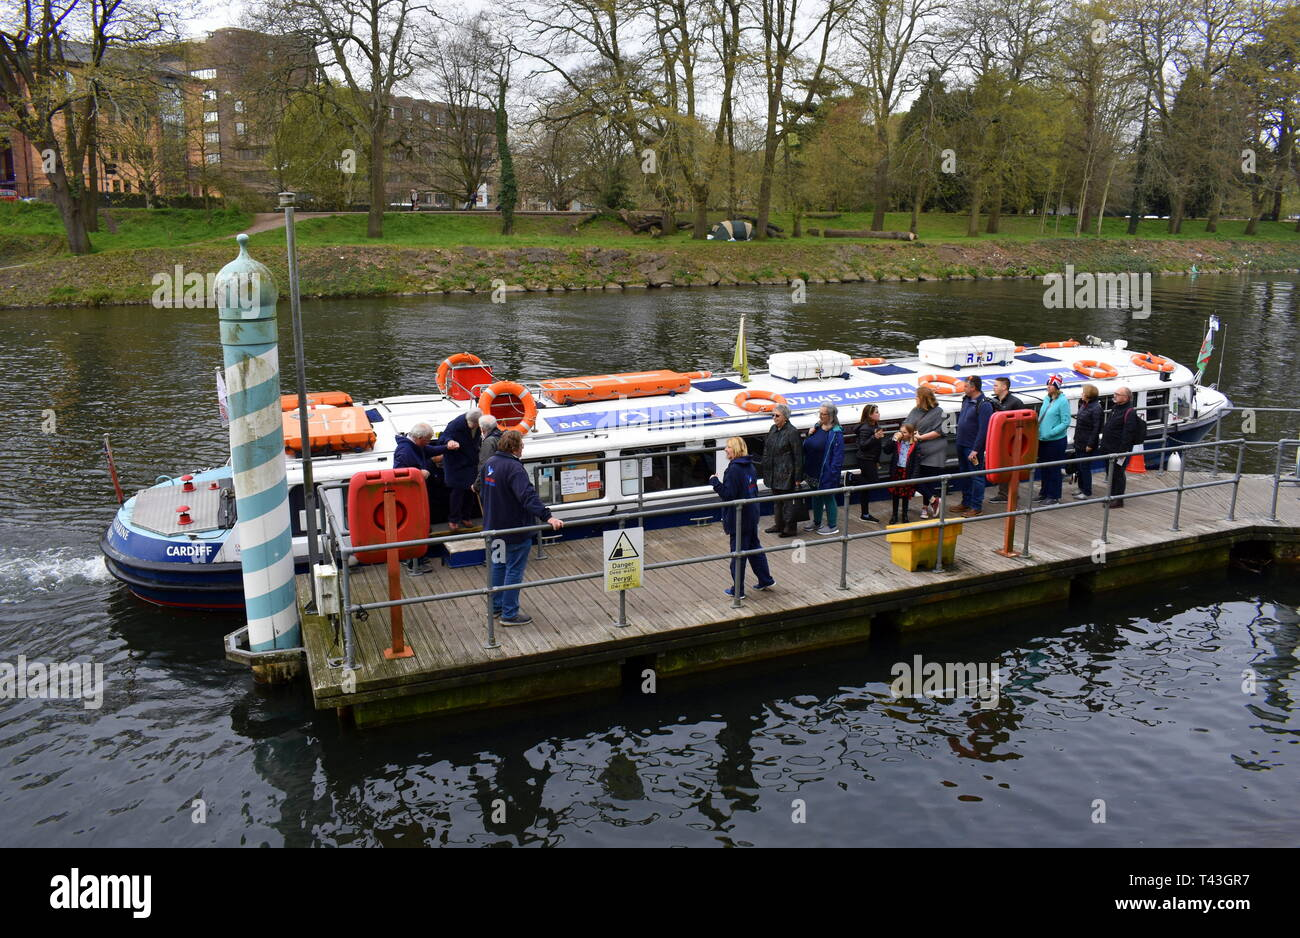 People waiting to embark the Princess Katherine water taxi from Cardiff city centre to Cardiff Bay - Stock Image